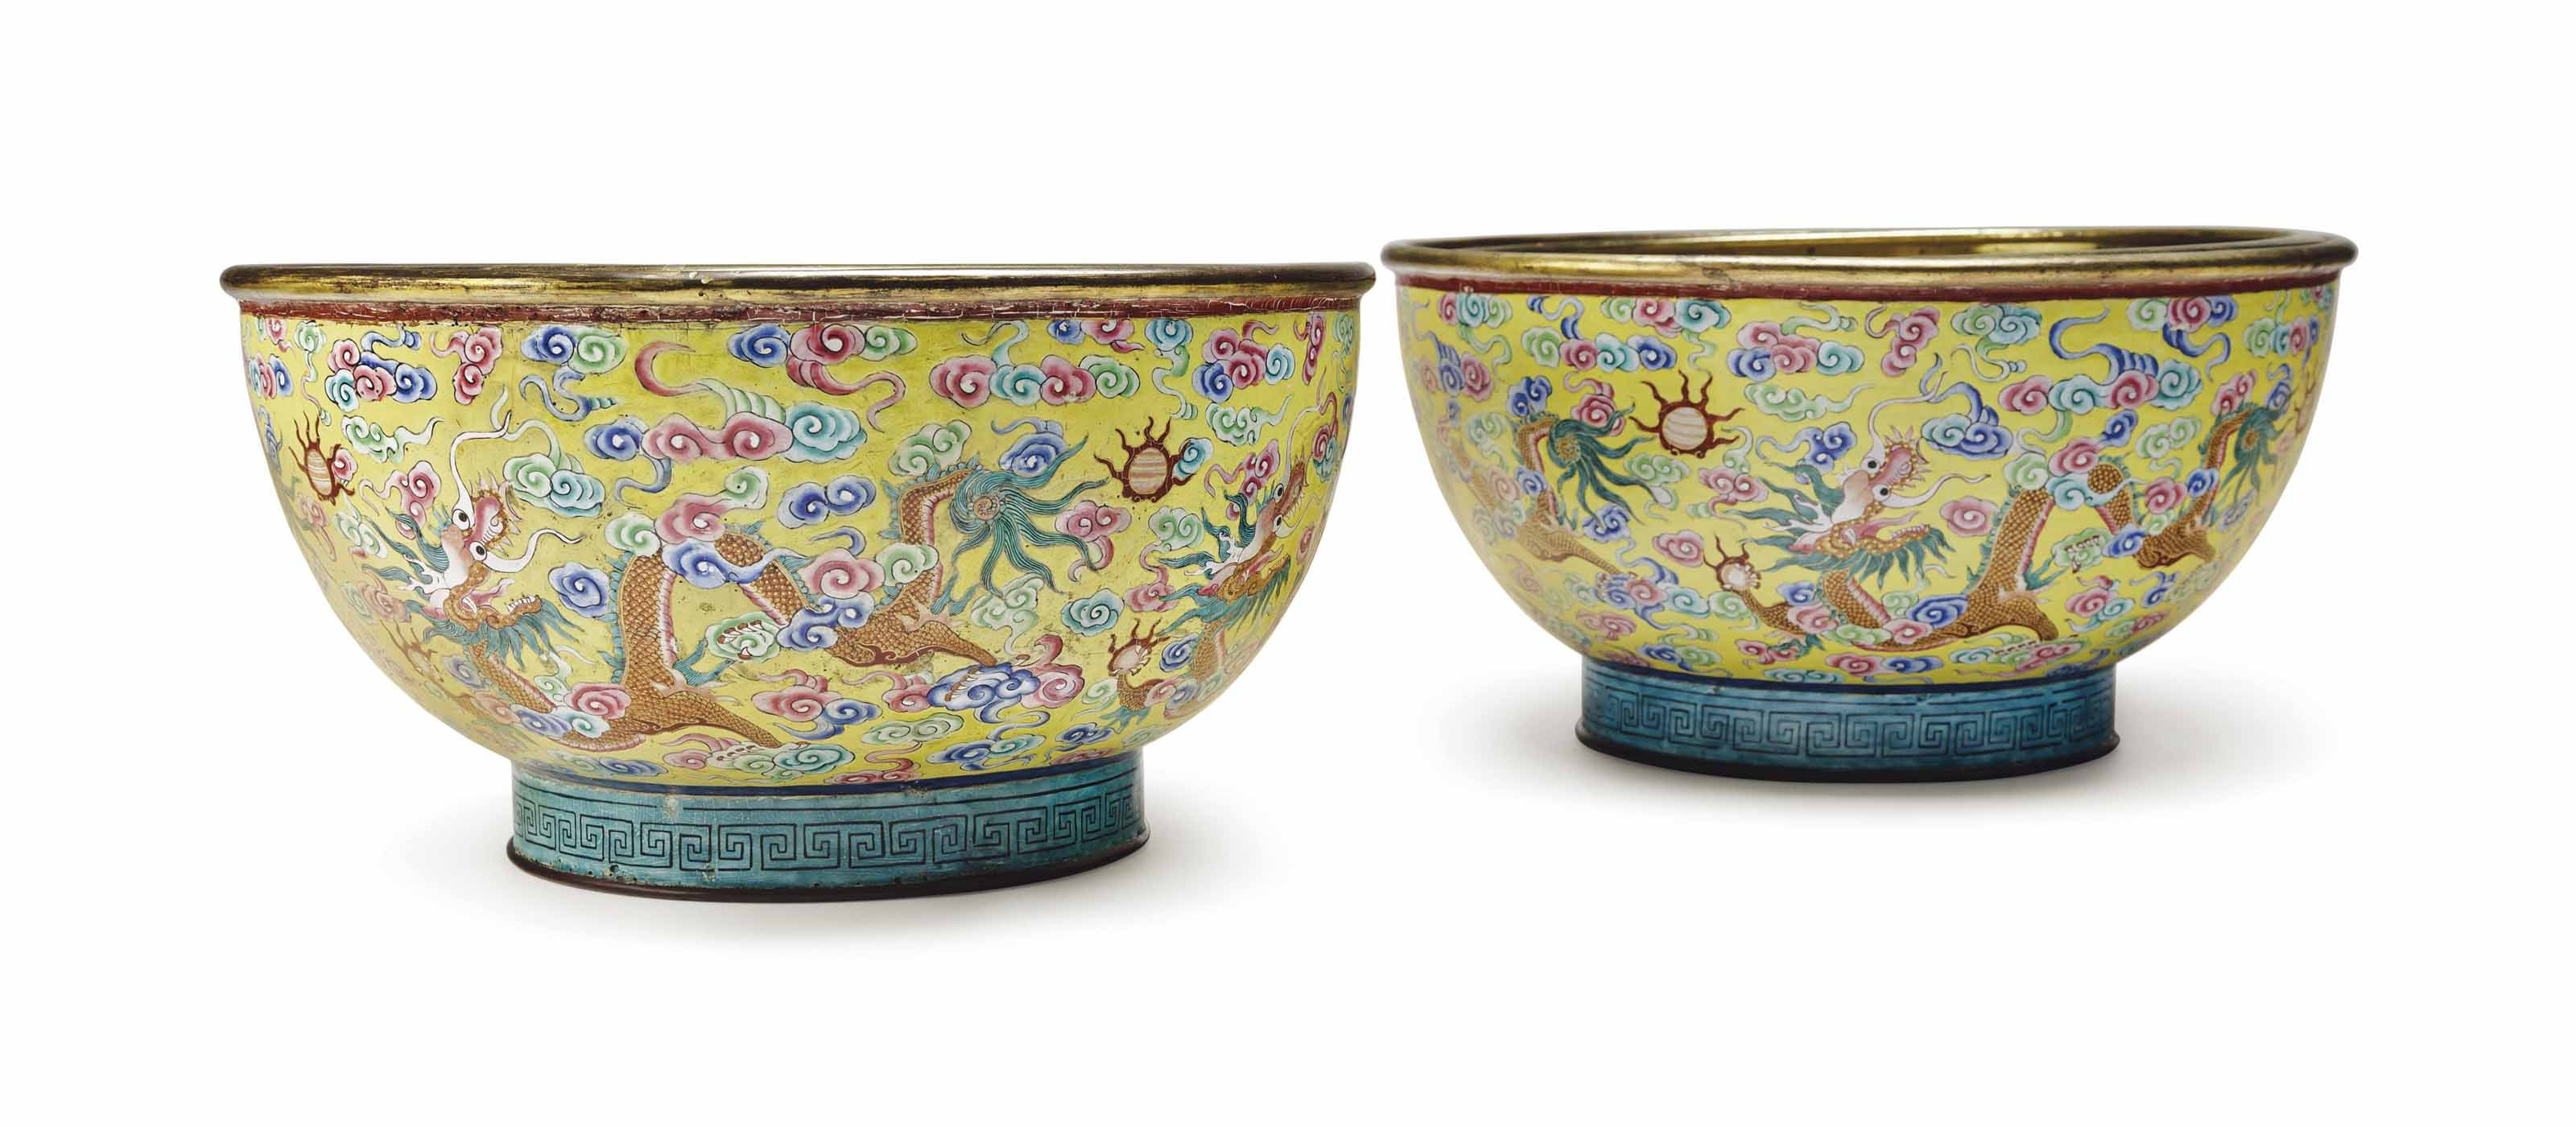 A PAIR OF CHINESE YELLOW-GROUND AND PAINTED ENAMEL BOWLS